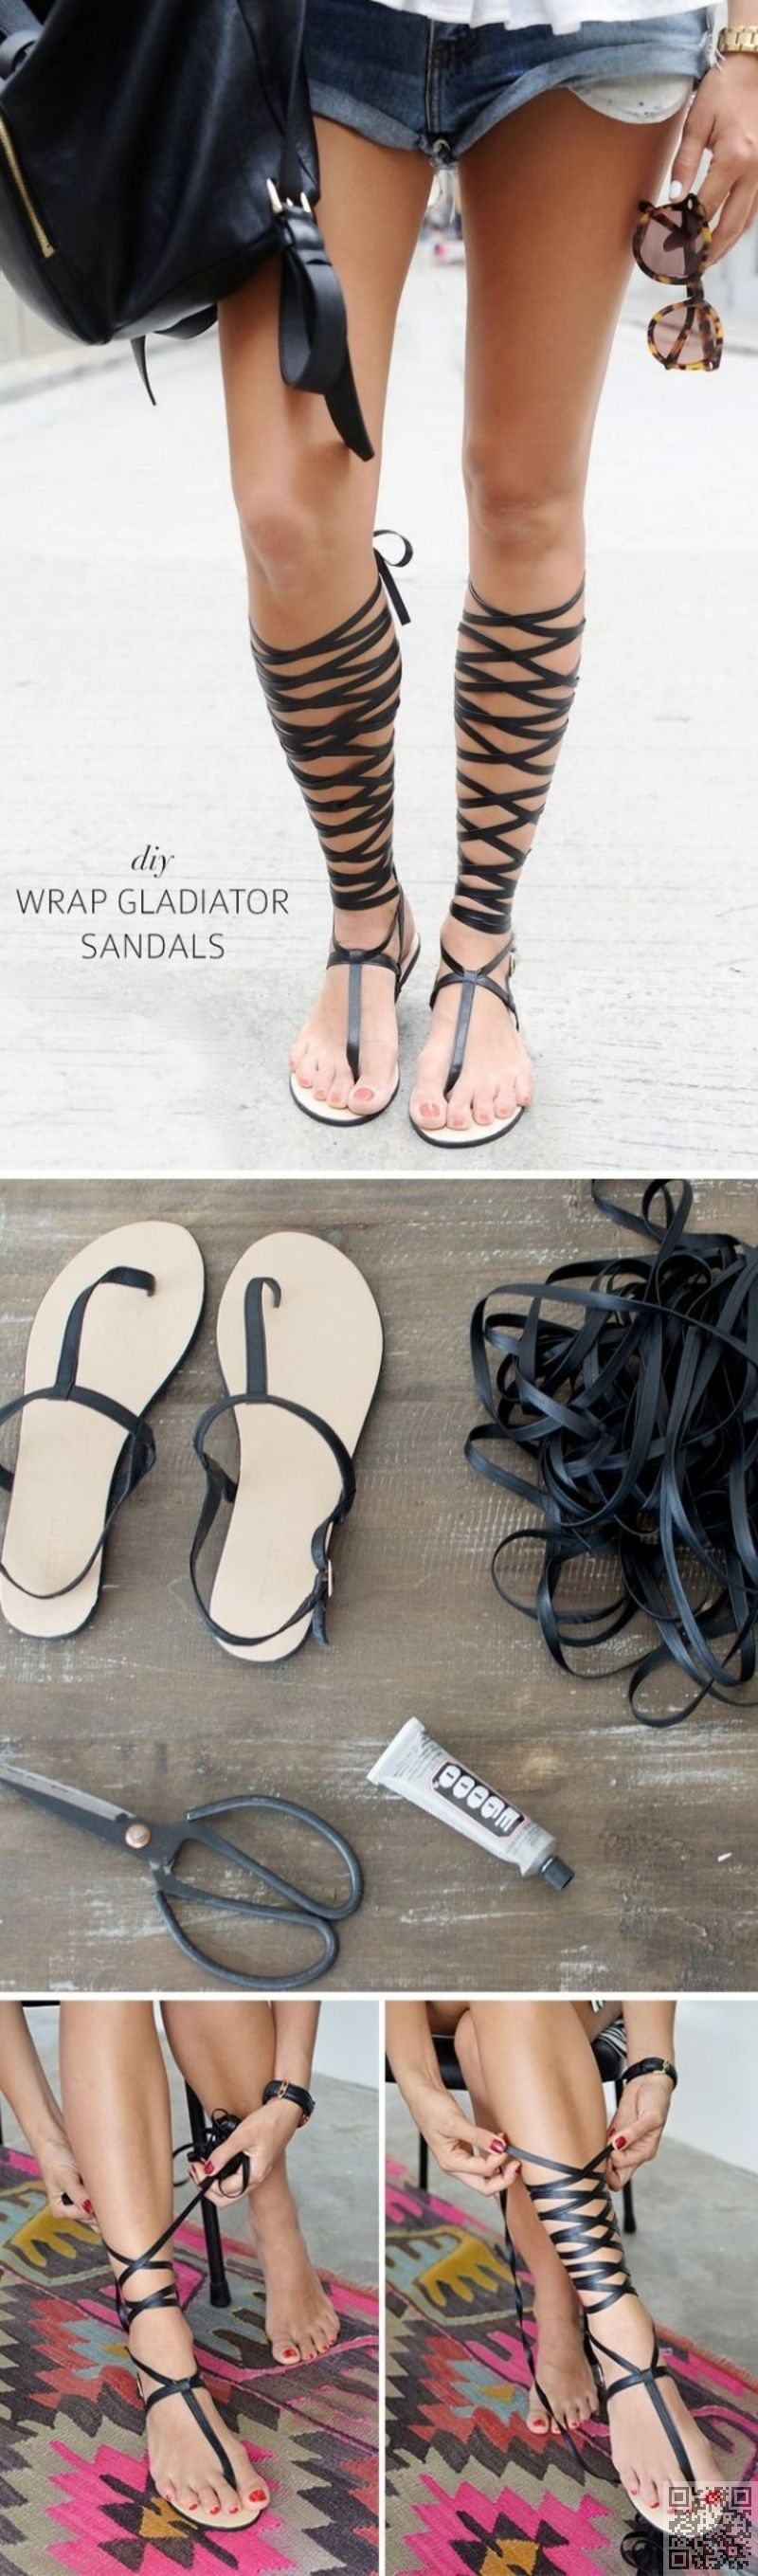 Gladiator sandals town shoes - Diy Lace Up Sandals 31 Shoe Projects For The Best Feet In Town